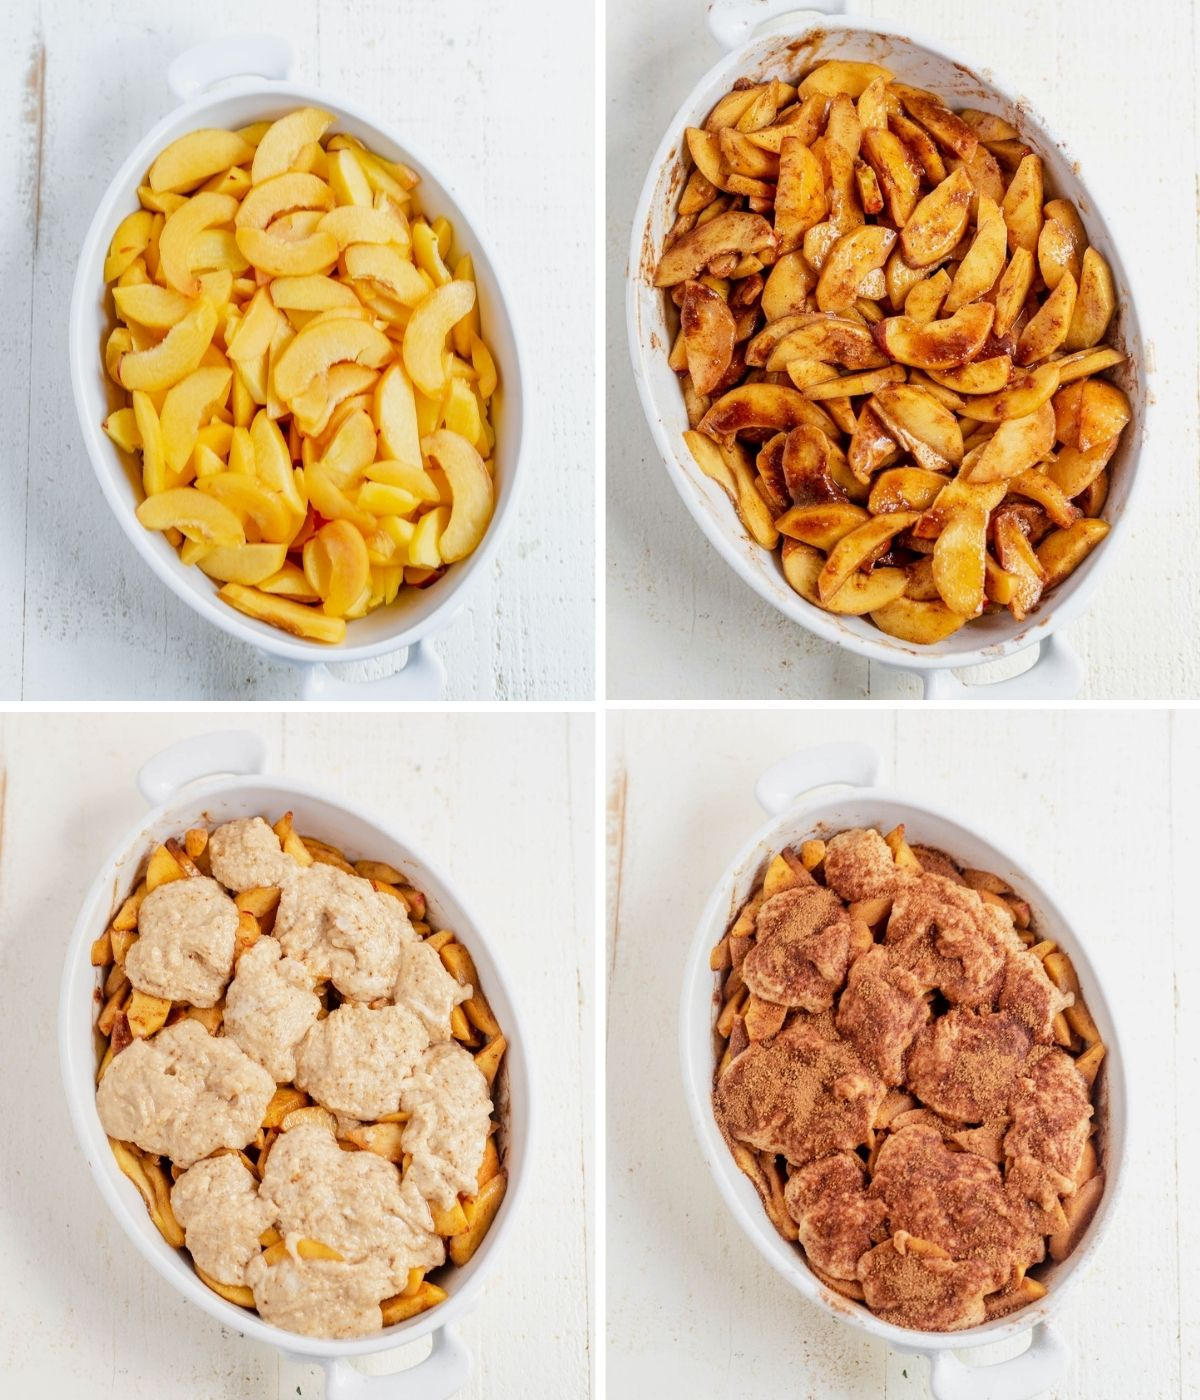 step by step images showing how to make gluten free peach cobbler